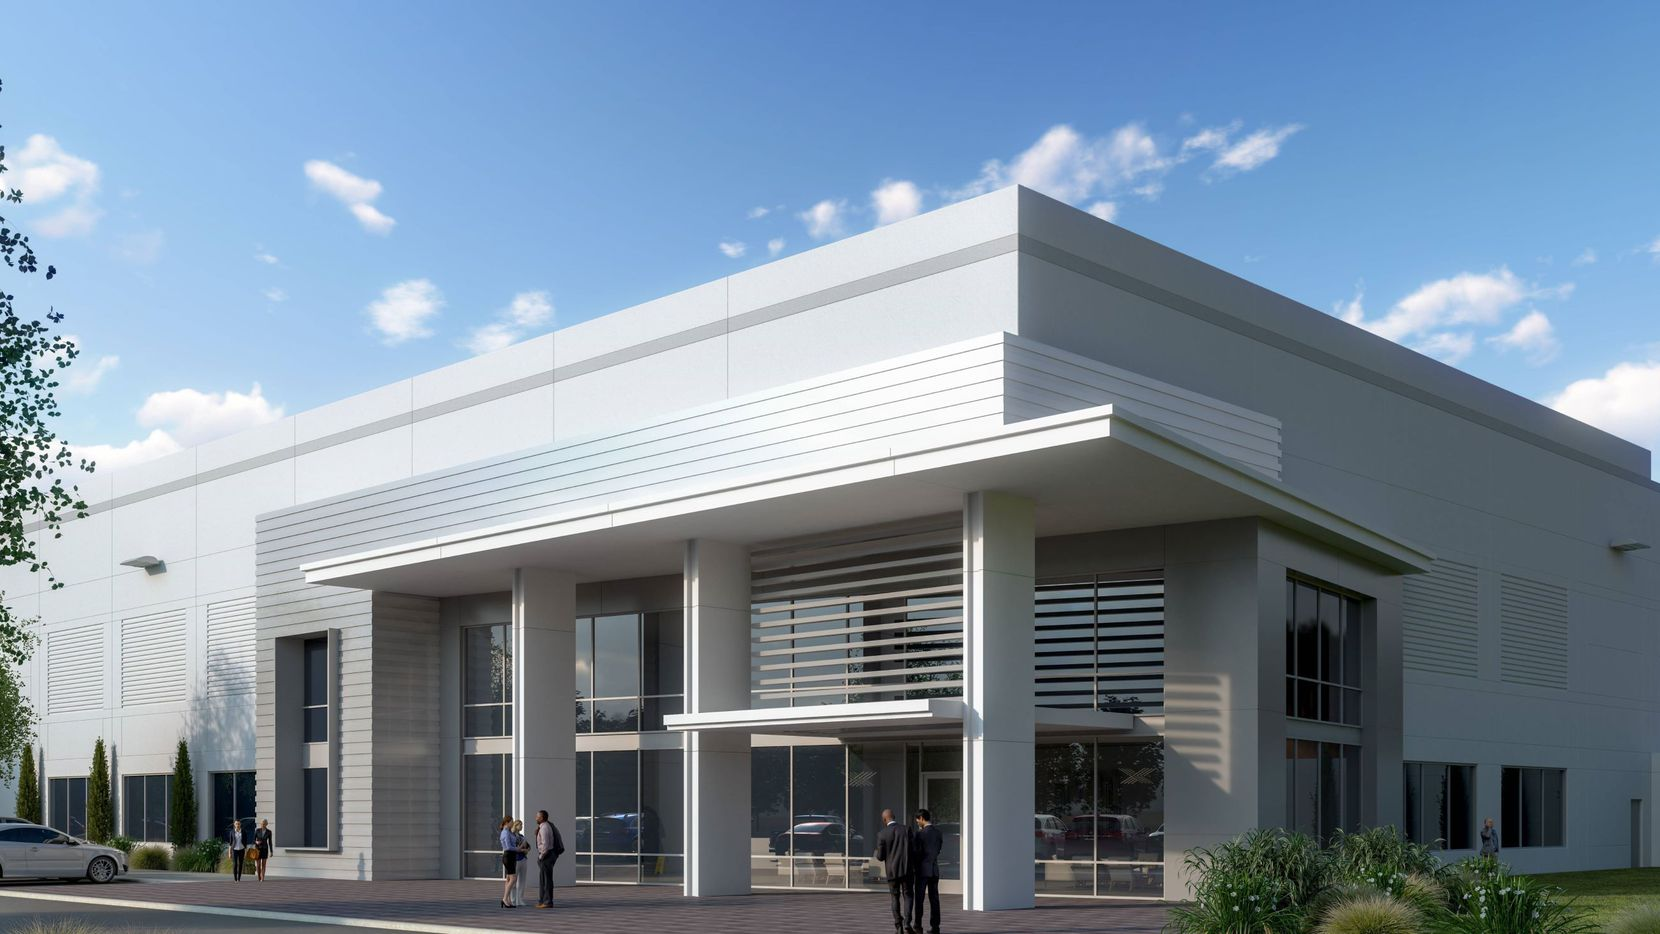 The Alliance Center North buildings are planned near Interstate 35W.